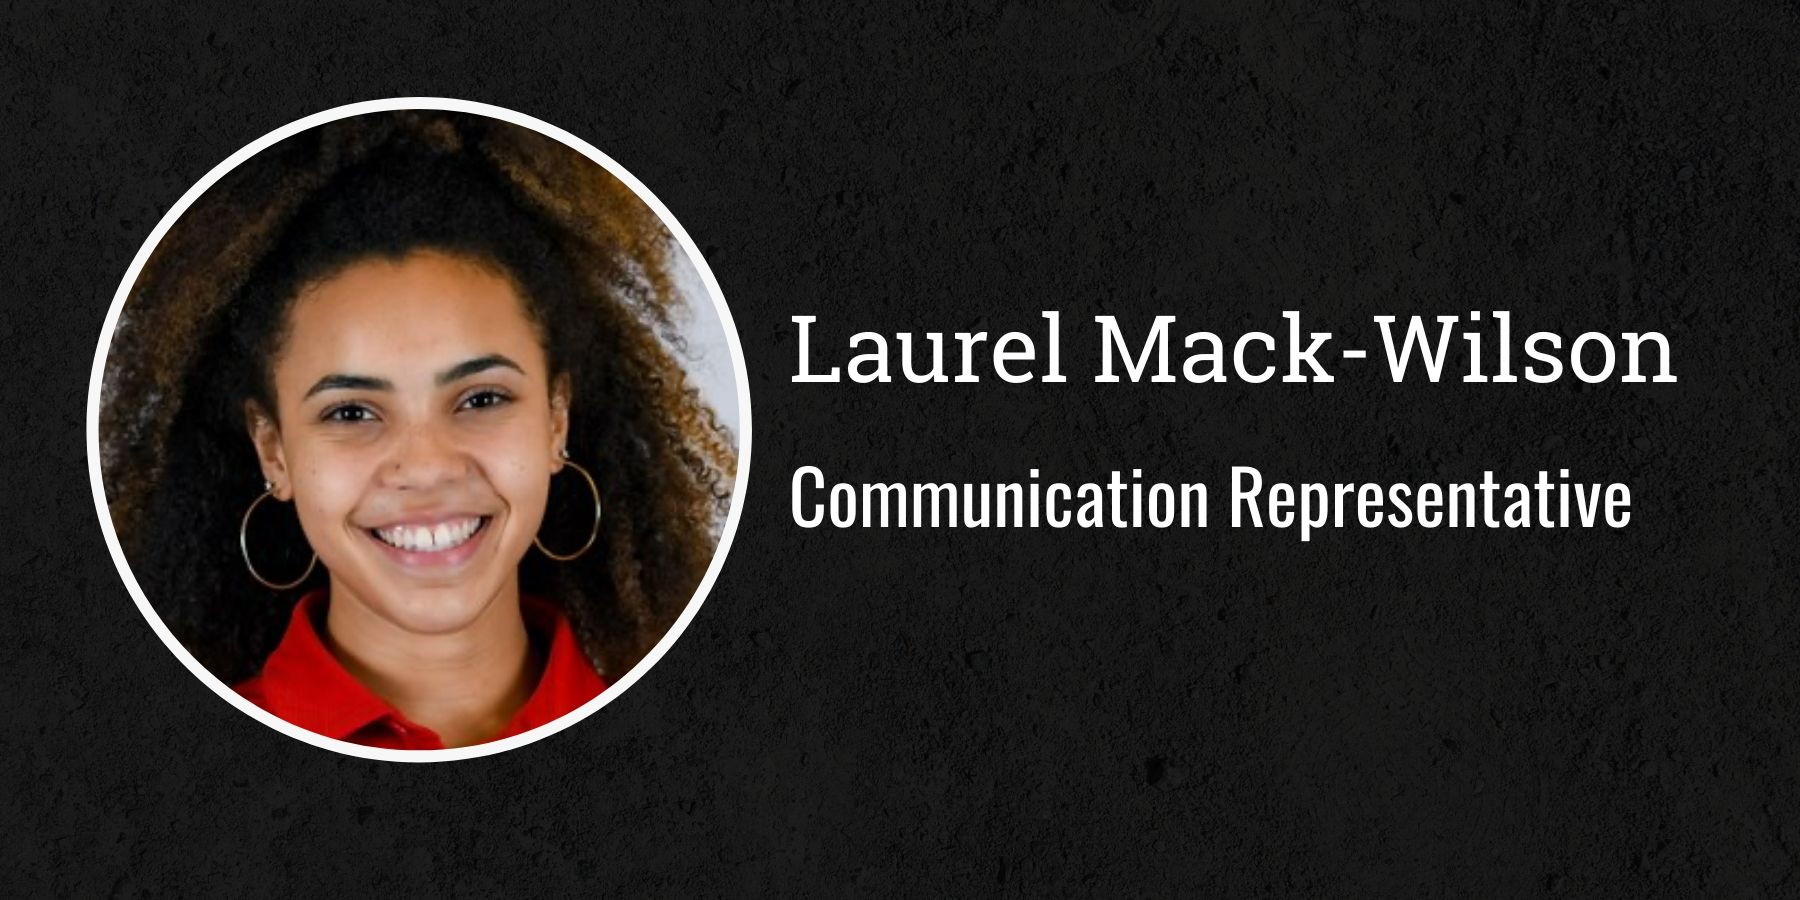 Photo of Laurel Mack-Wilson with text Communication Representative